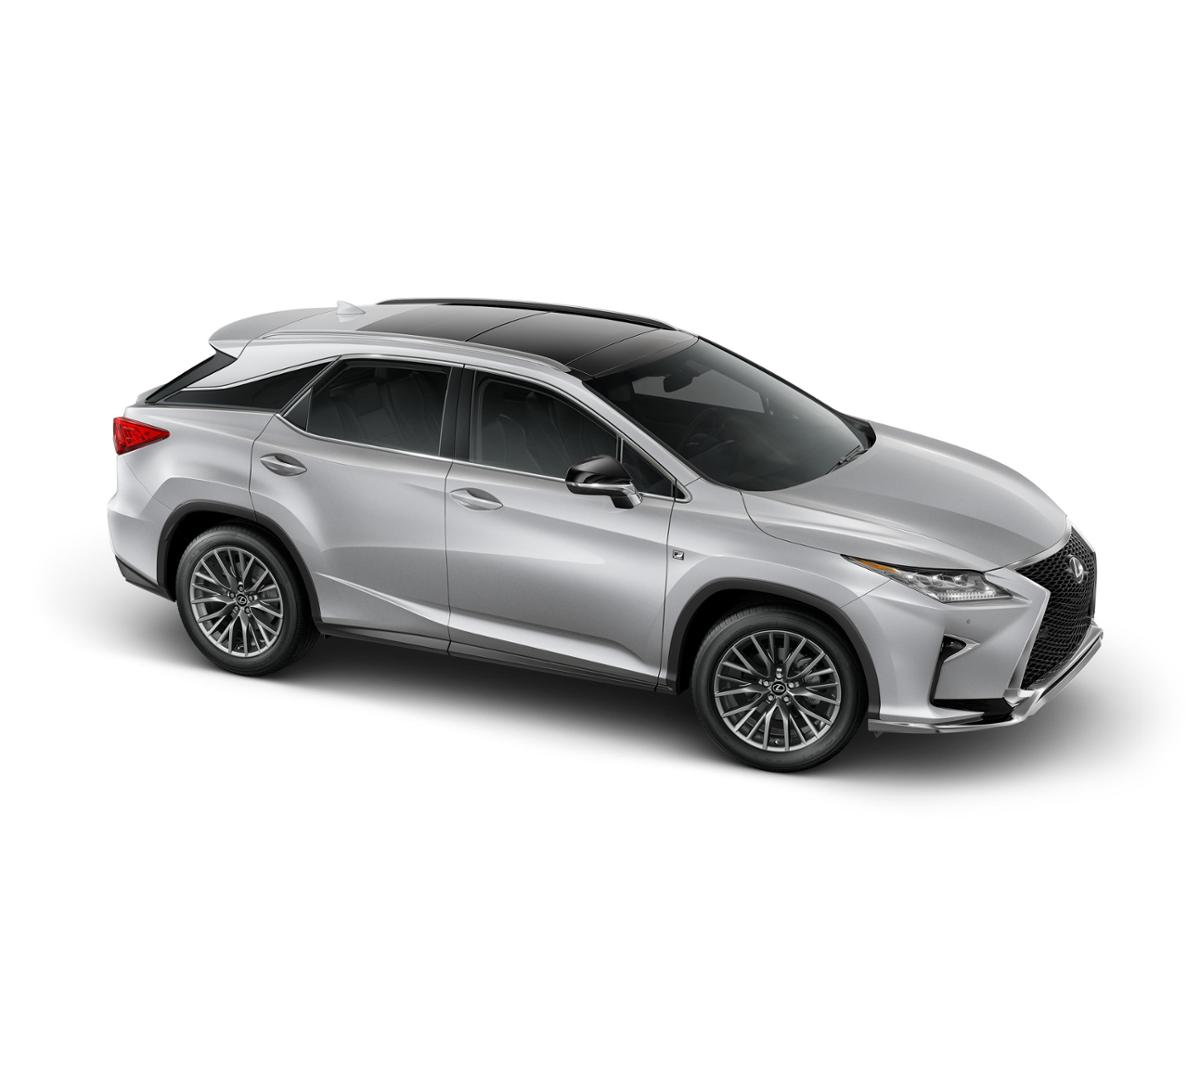 new 2017 lexus rx 350 silver lining metallic for sale in houston pearland league city tx. Black Bedroom Furniture Sets. Home Design Ideas